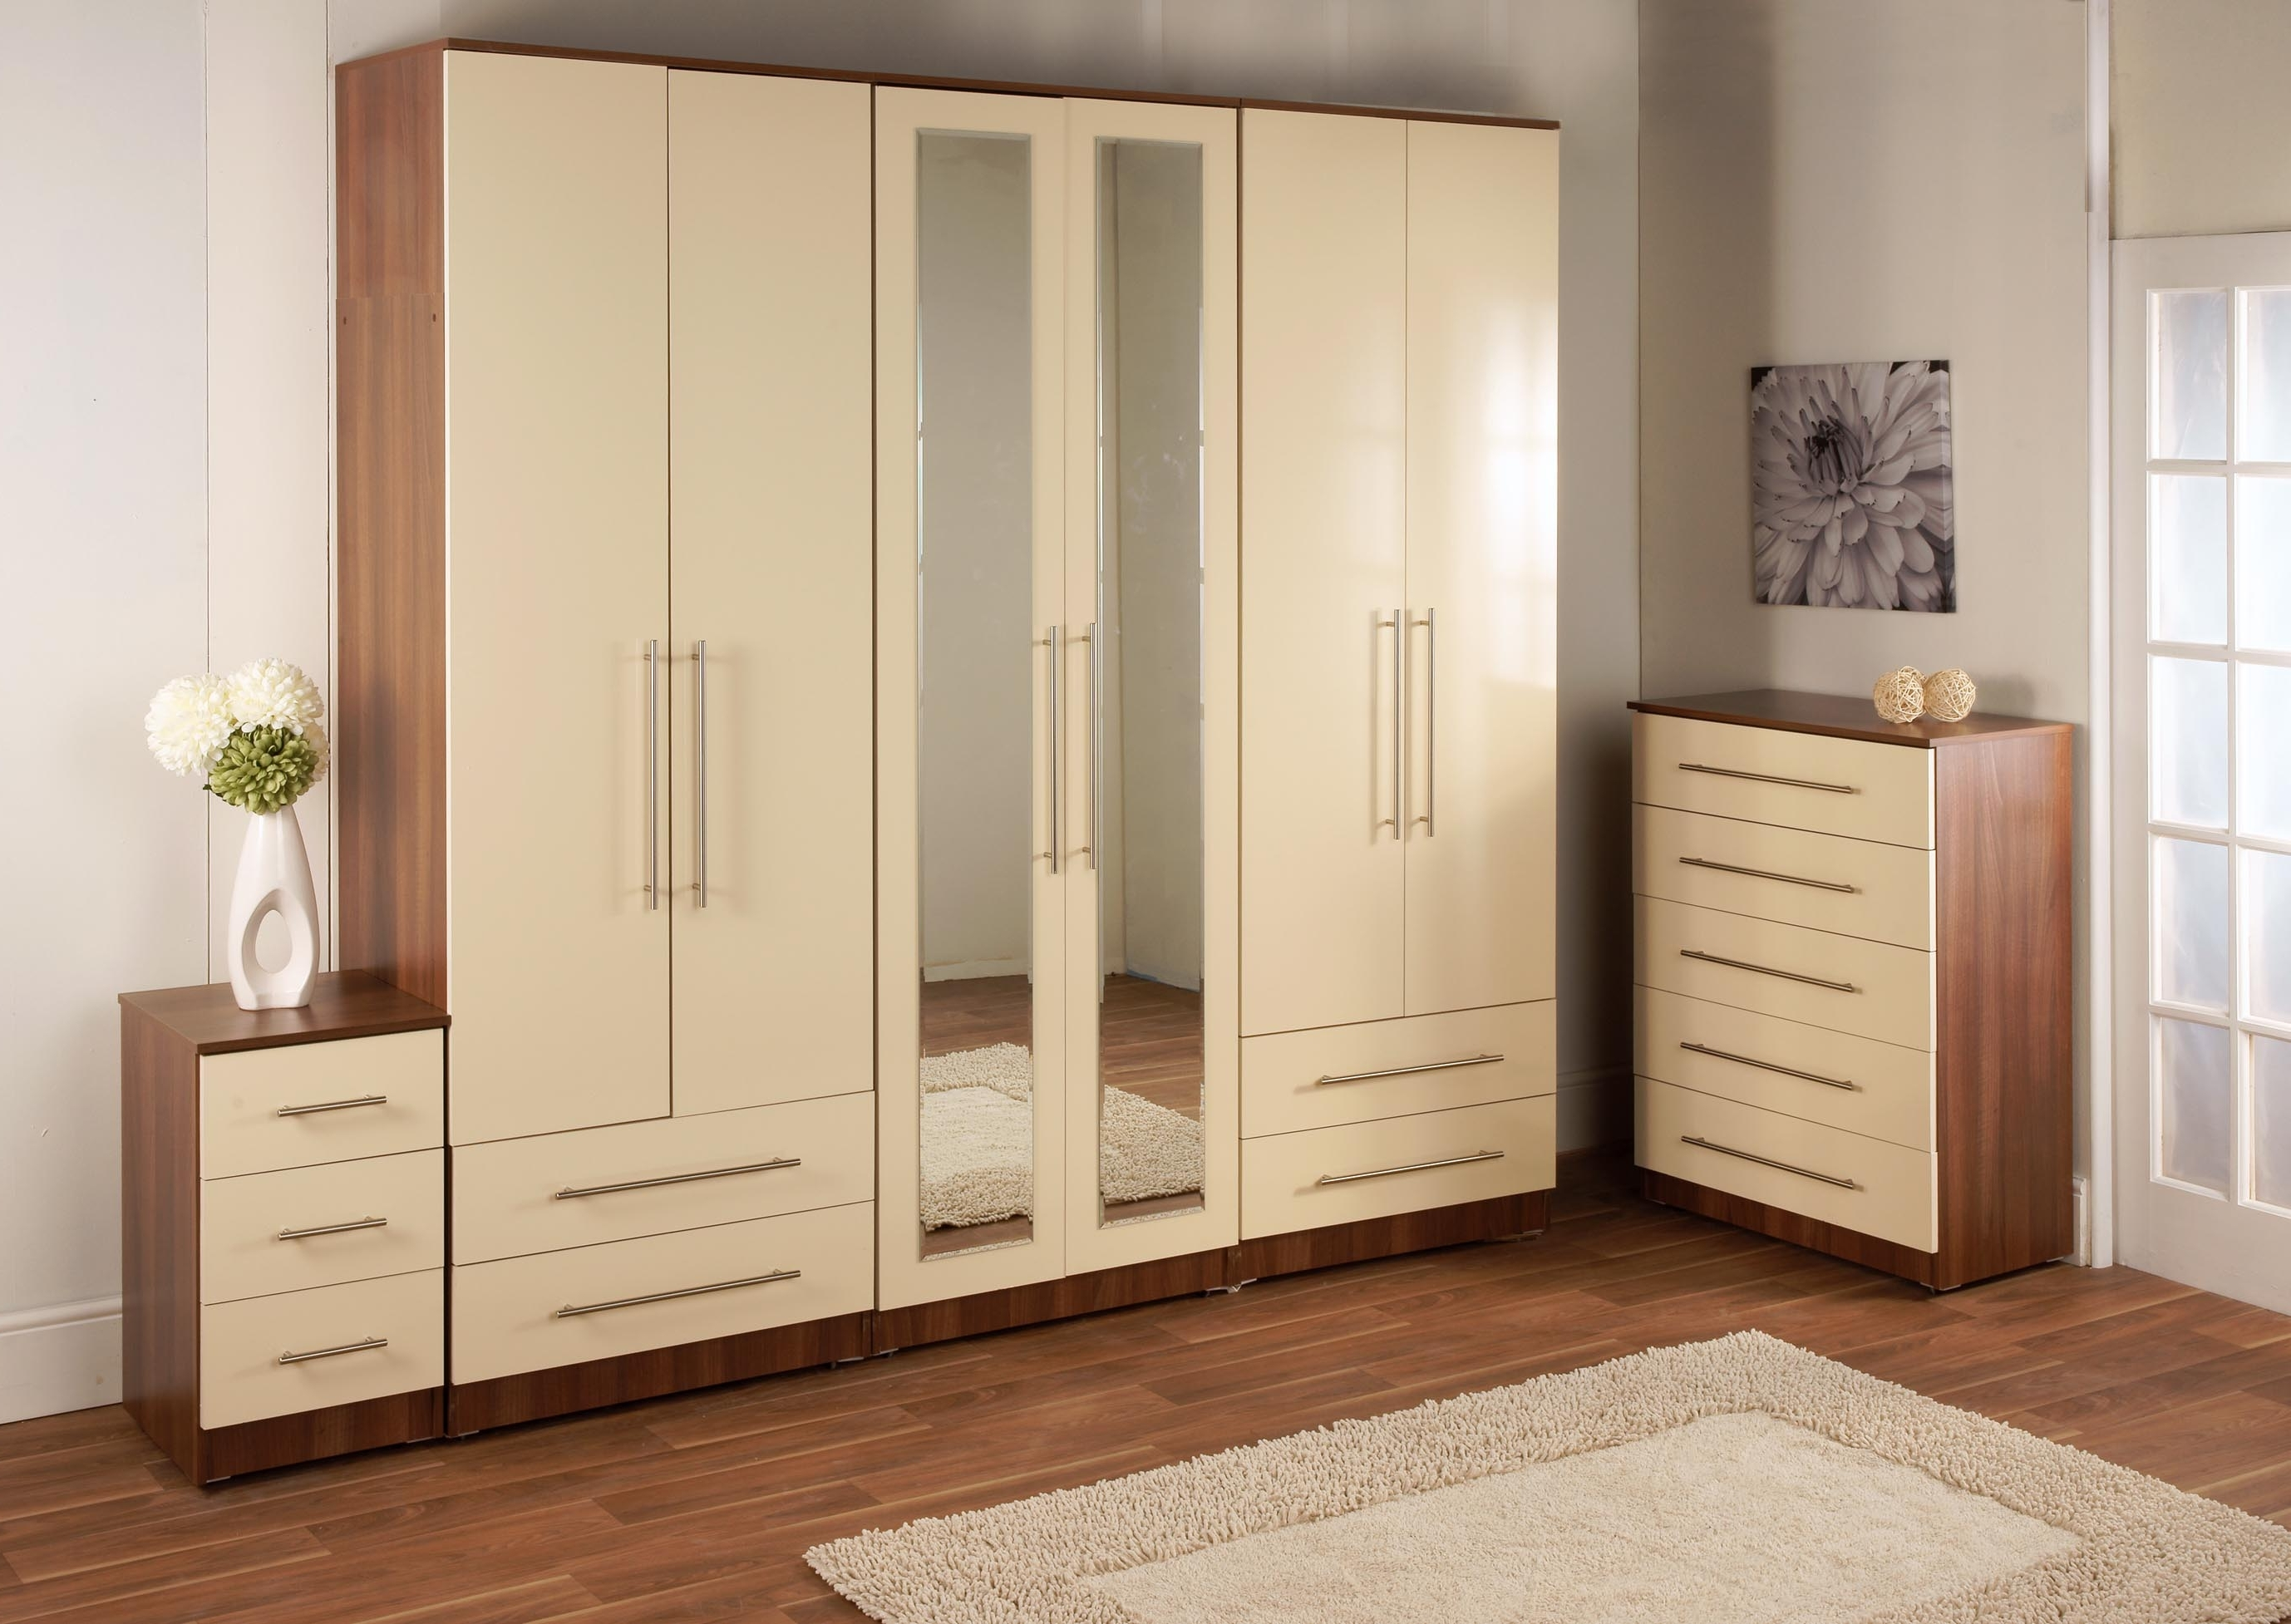 Cheap Wardrobes Sets Intended For Current Bedroom Furniture Wardrobes (View 6 of 15)